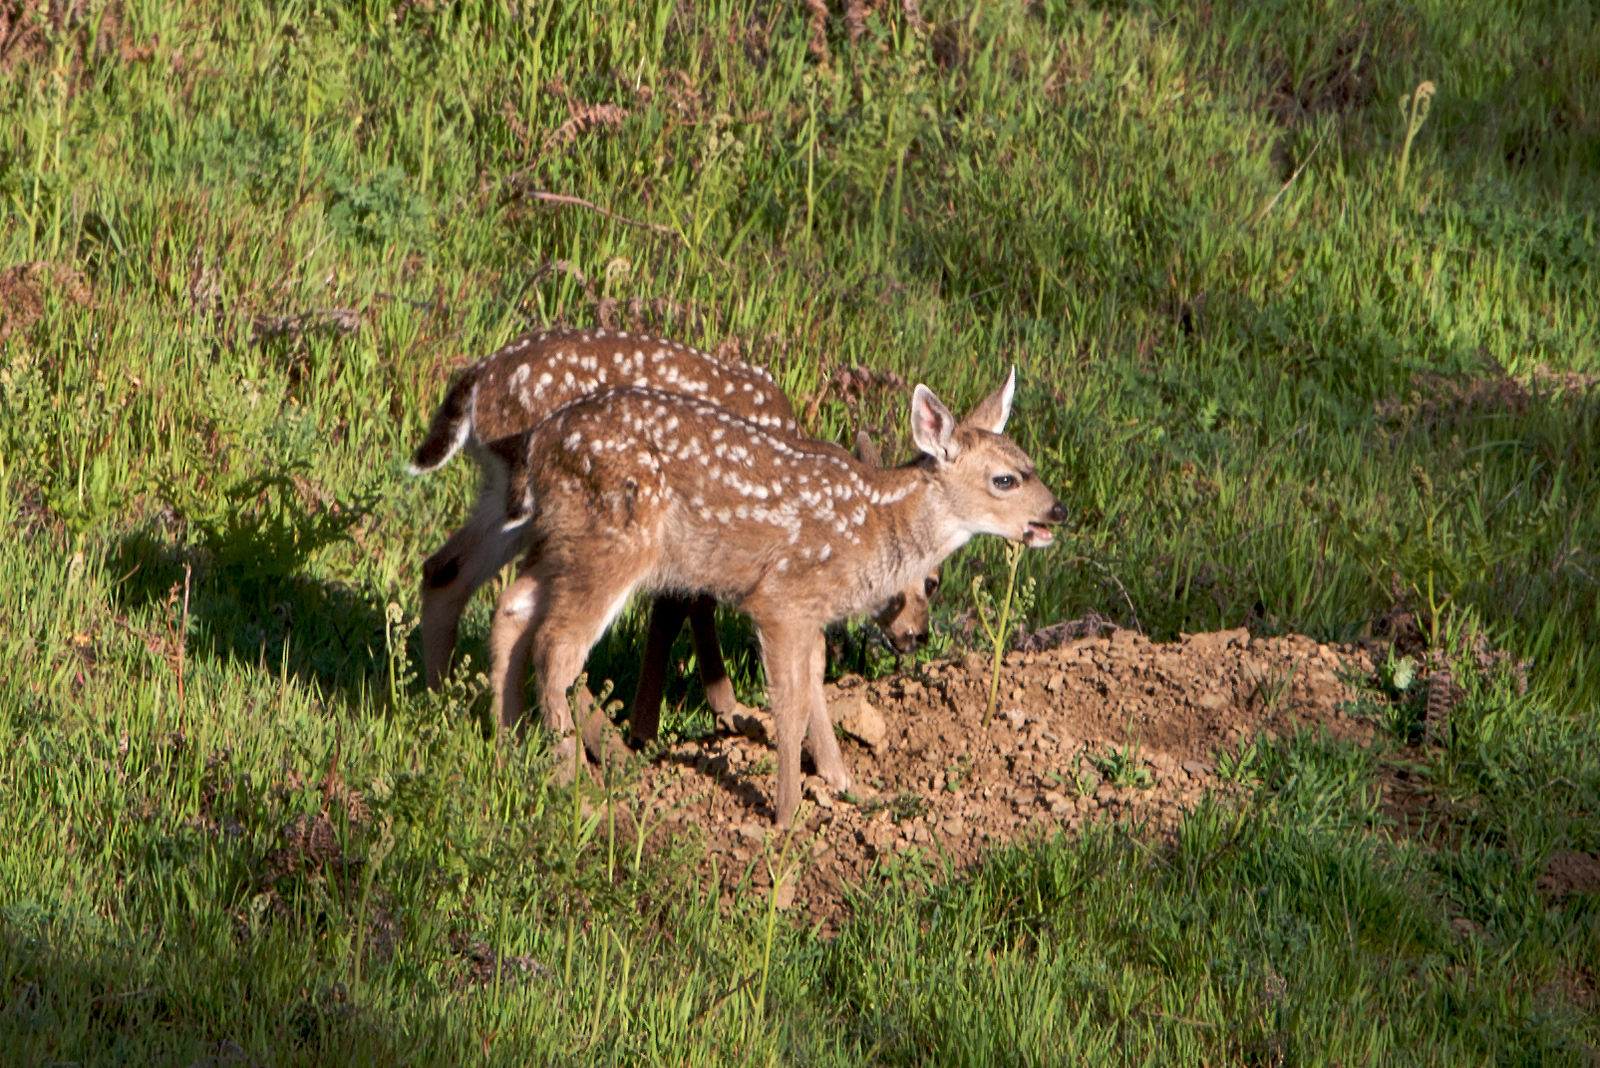 Blacktailed deer fawns eating dirt